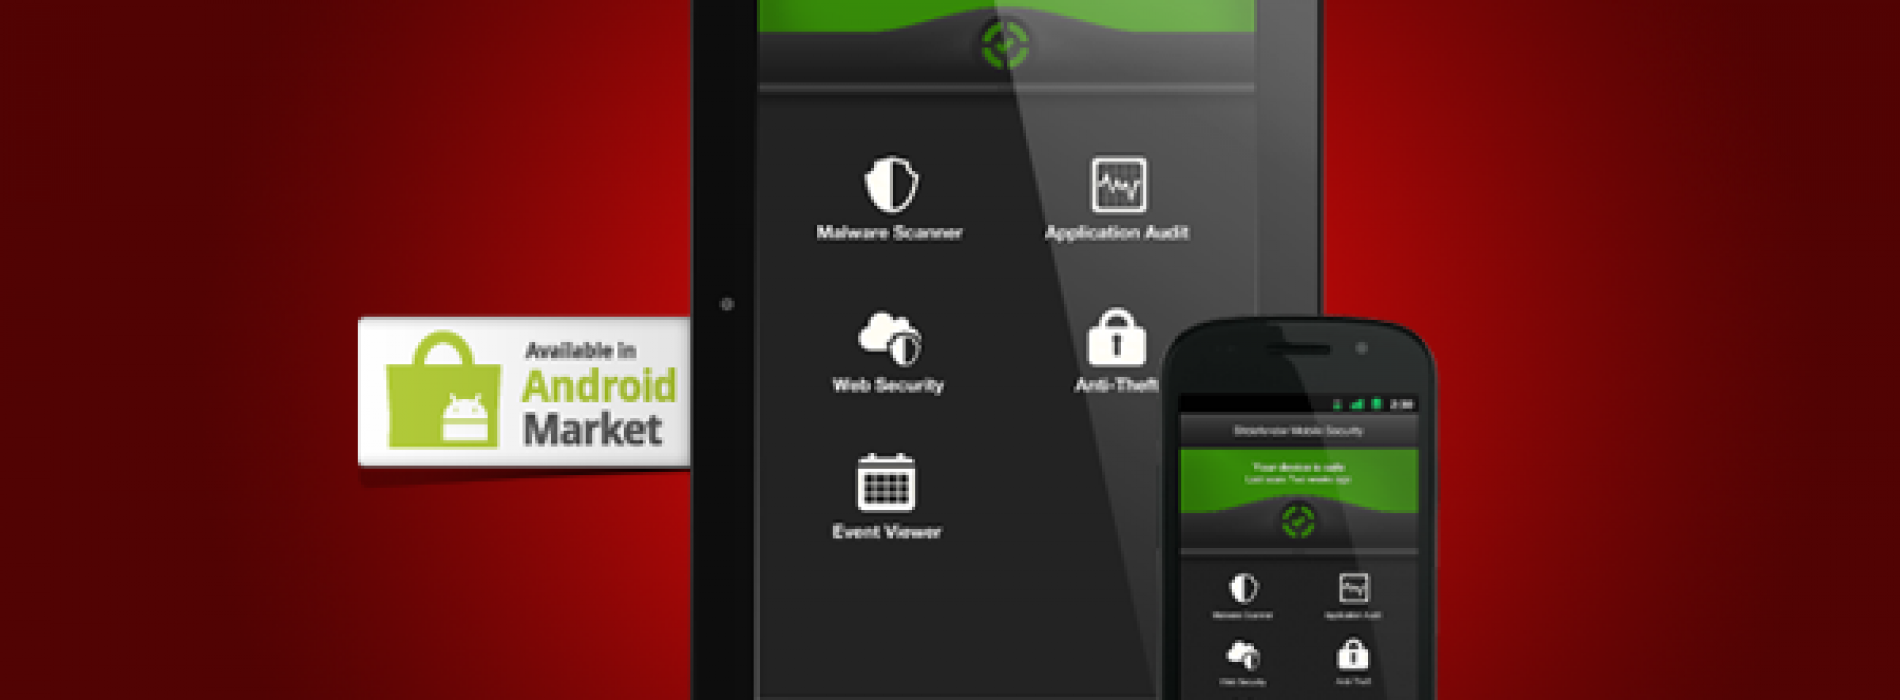 BitDefender bows Mobile Security app for Android